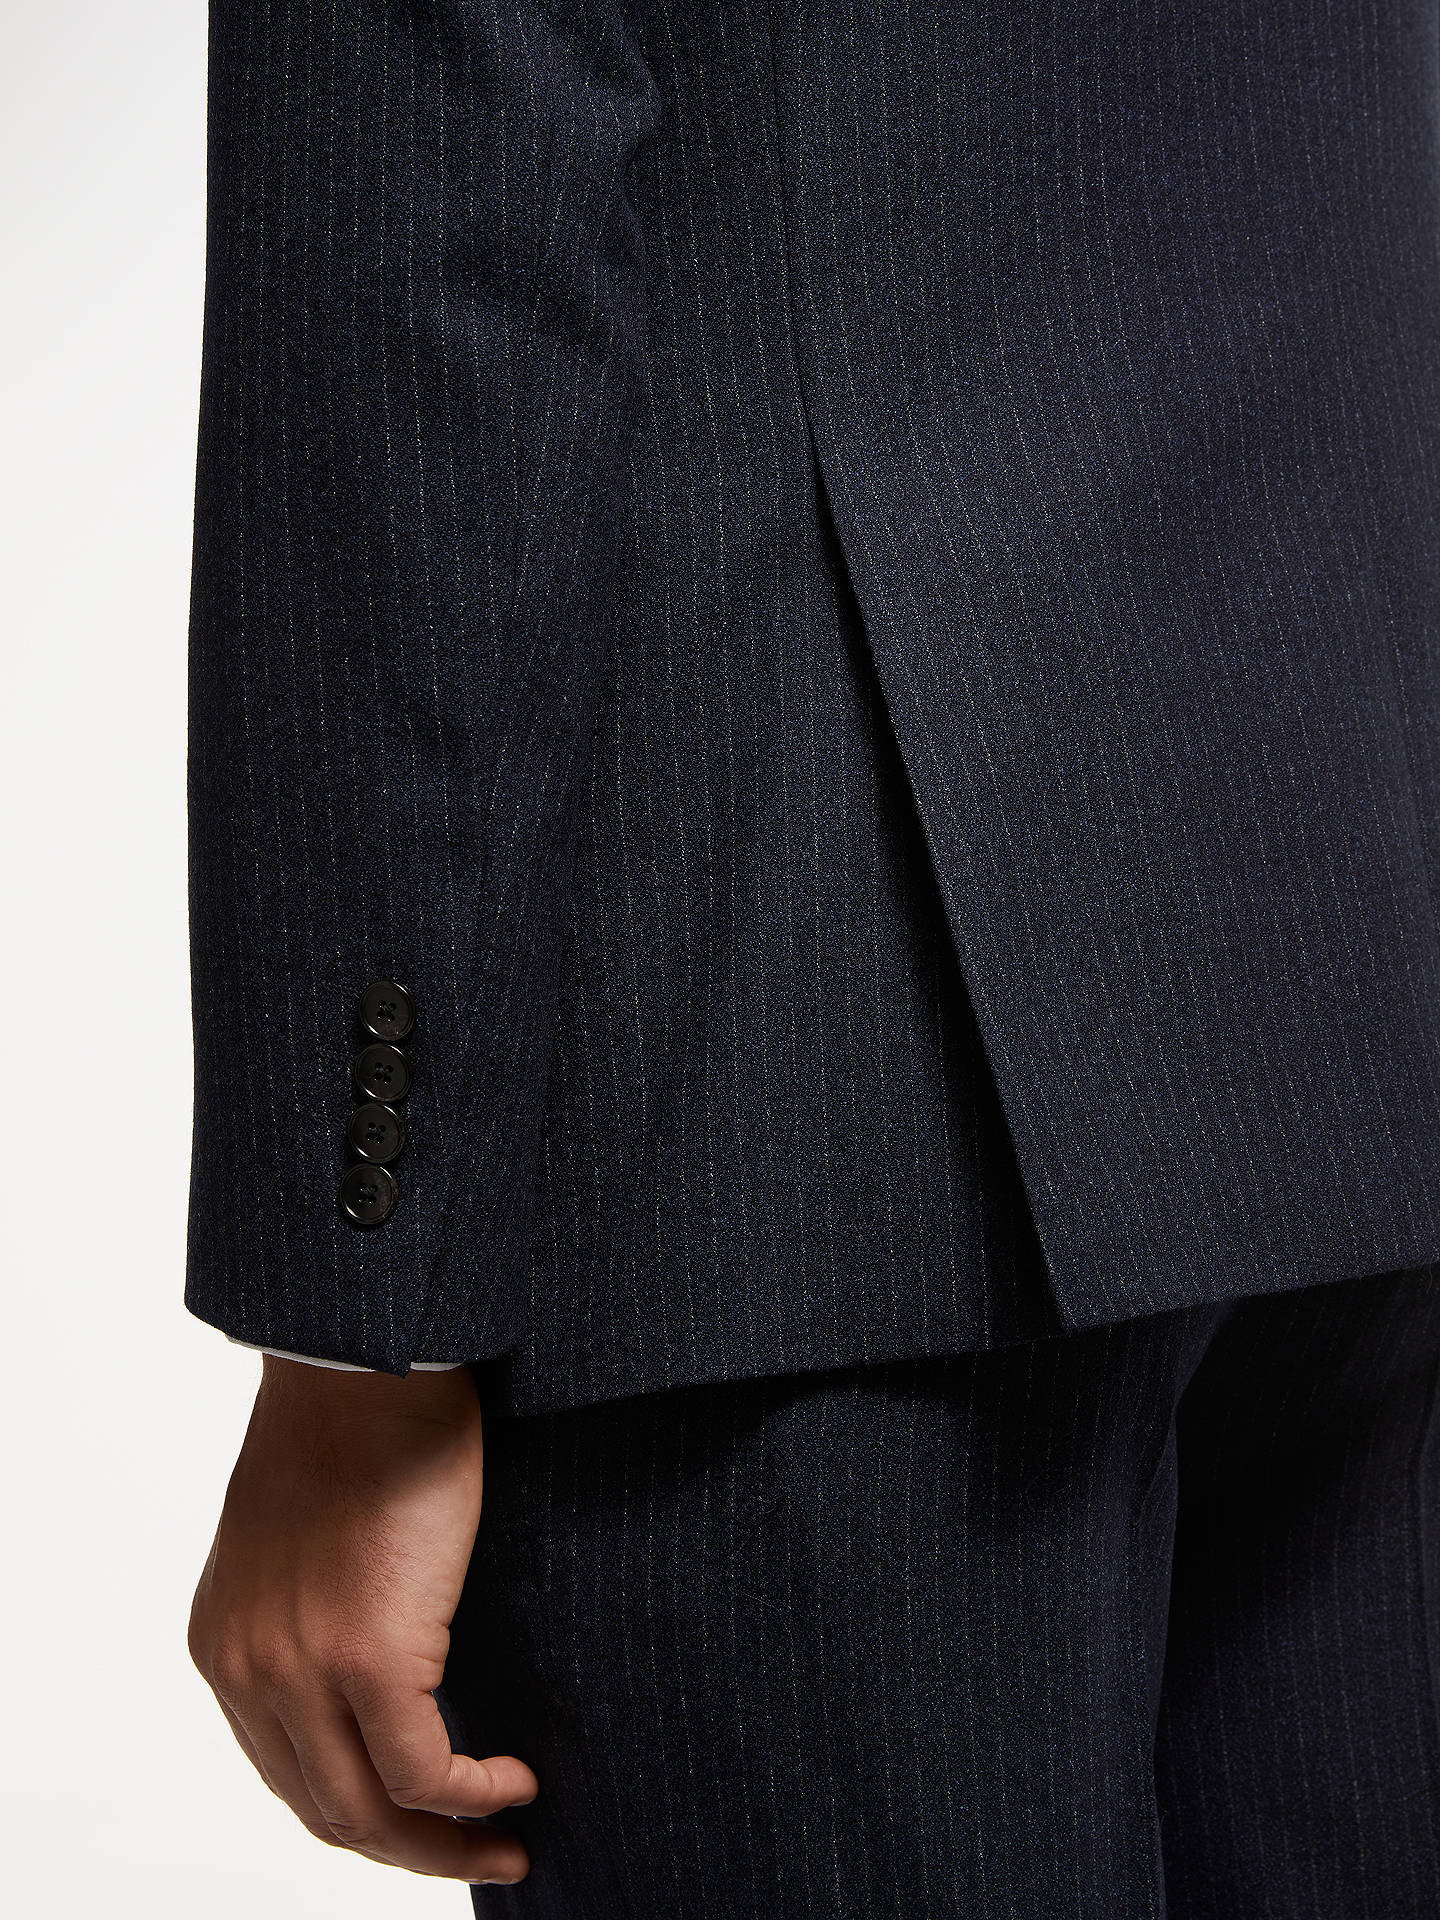 BuyJohn Lewis & Partners Crepe Stripe Tailored Suit Jacket, Navy, 42R Online at johnlewis.com